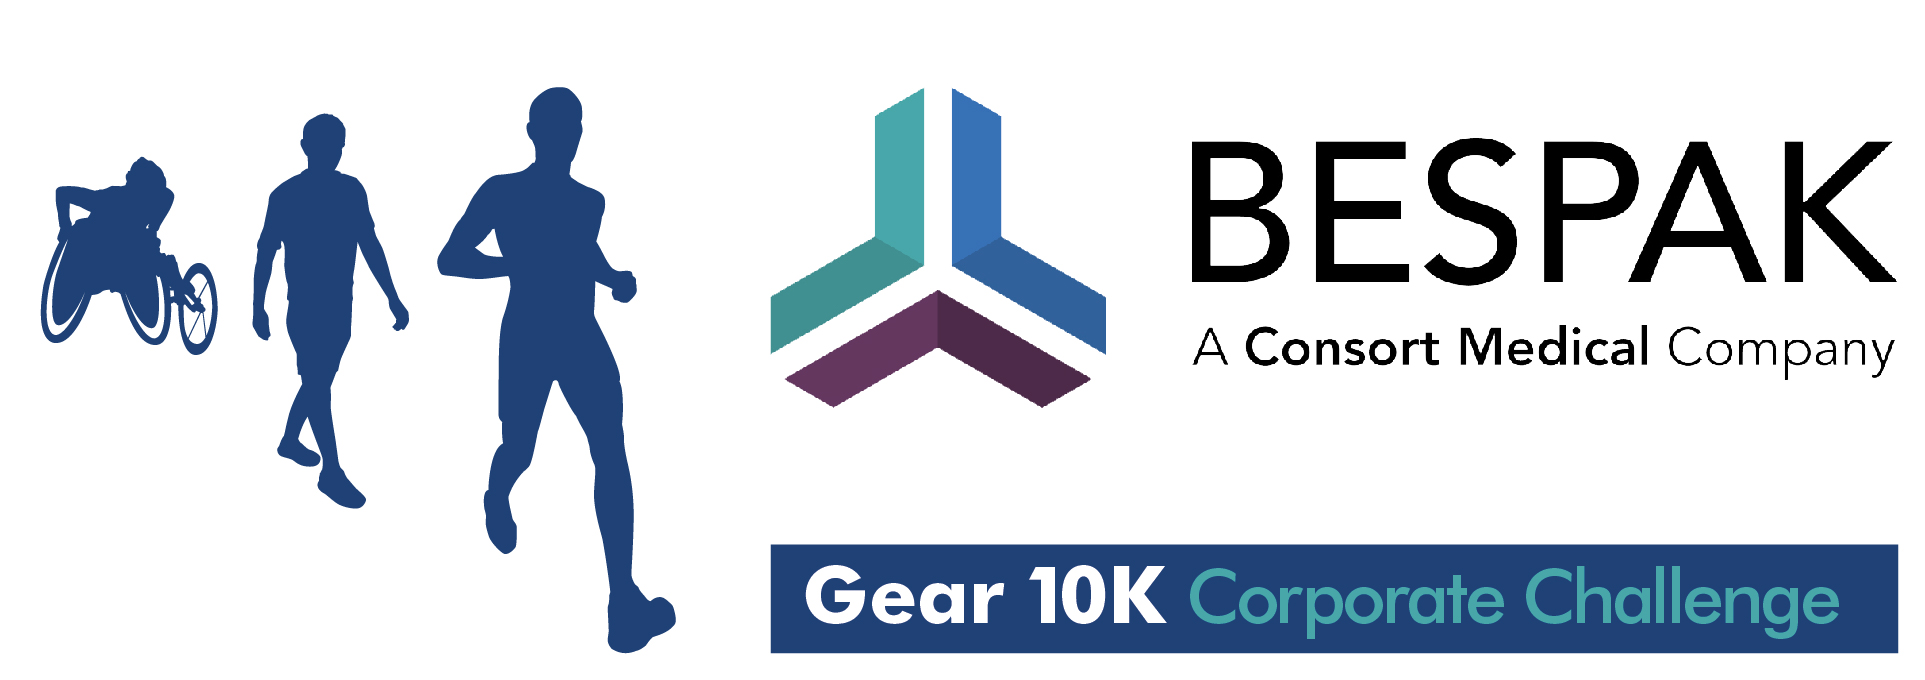 Gear 10K Bespak Corporate Challenge - Sunday 6th May 2018